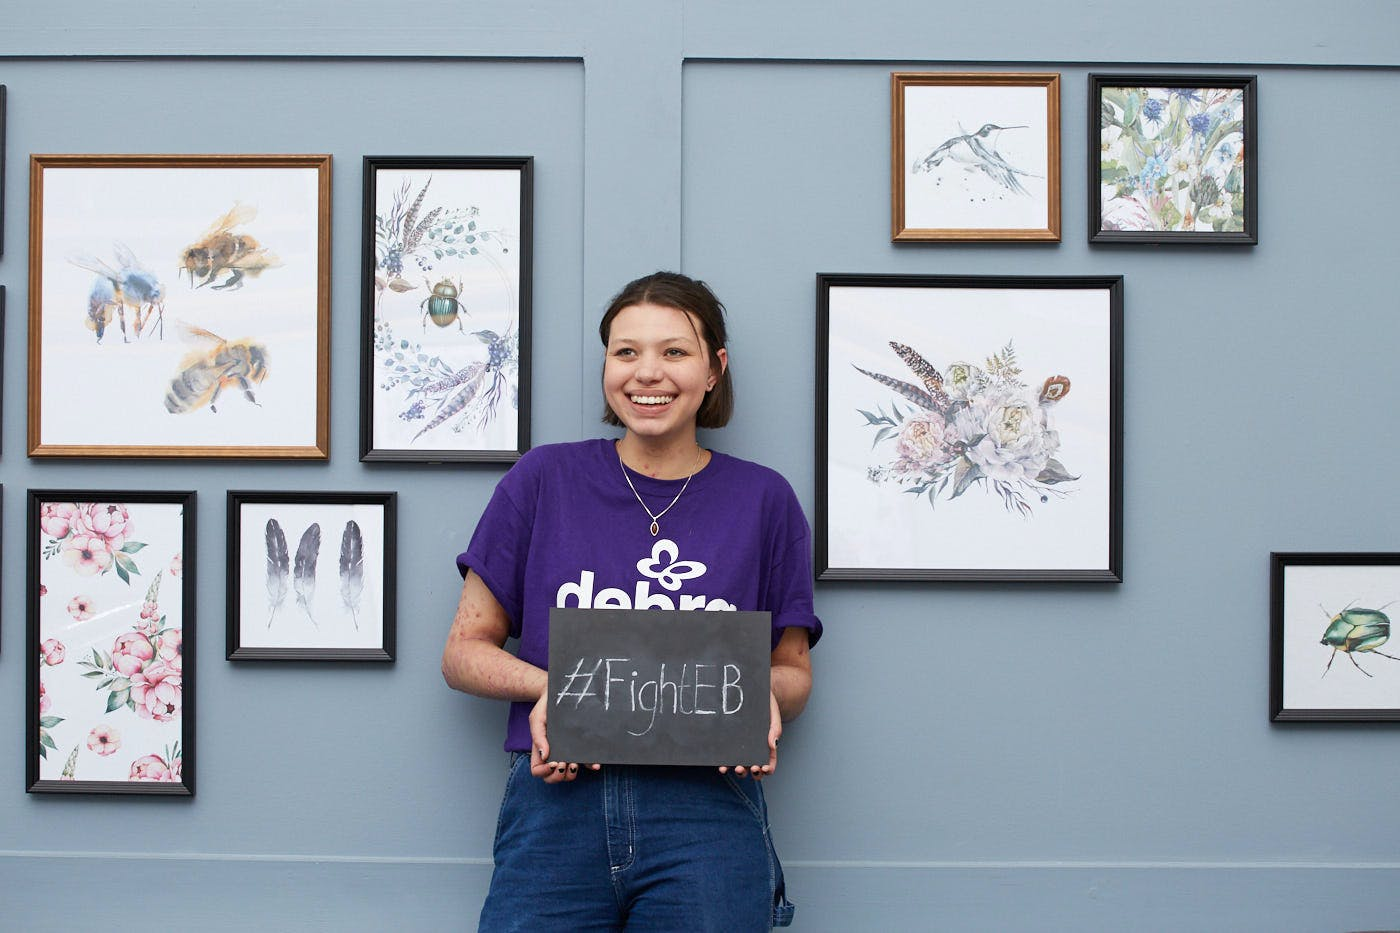 A girl leaning against a lavender coloured wall holding a chalk board that says '#FightEB'. The wall has paintings hanging on it.